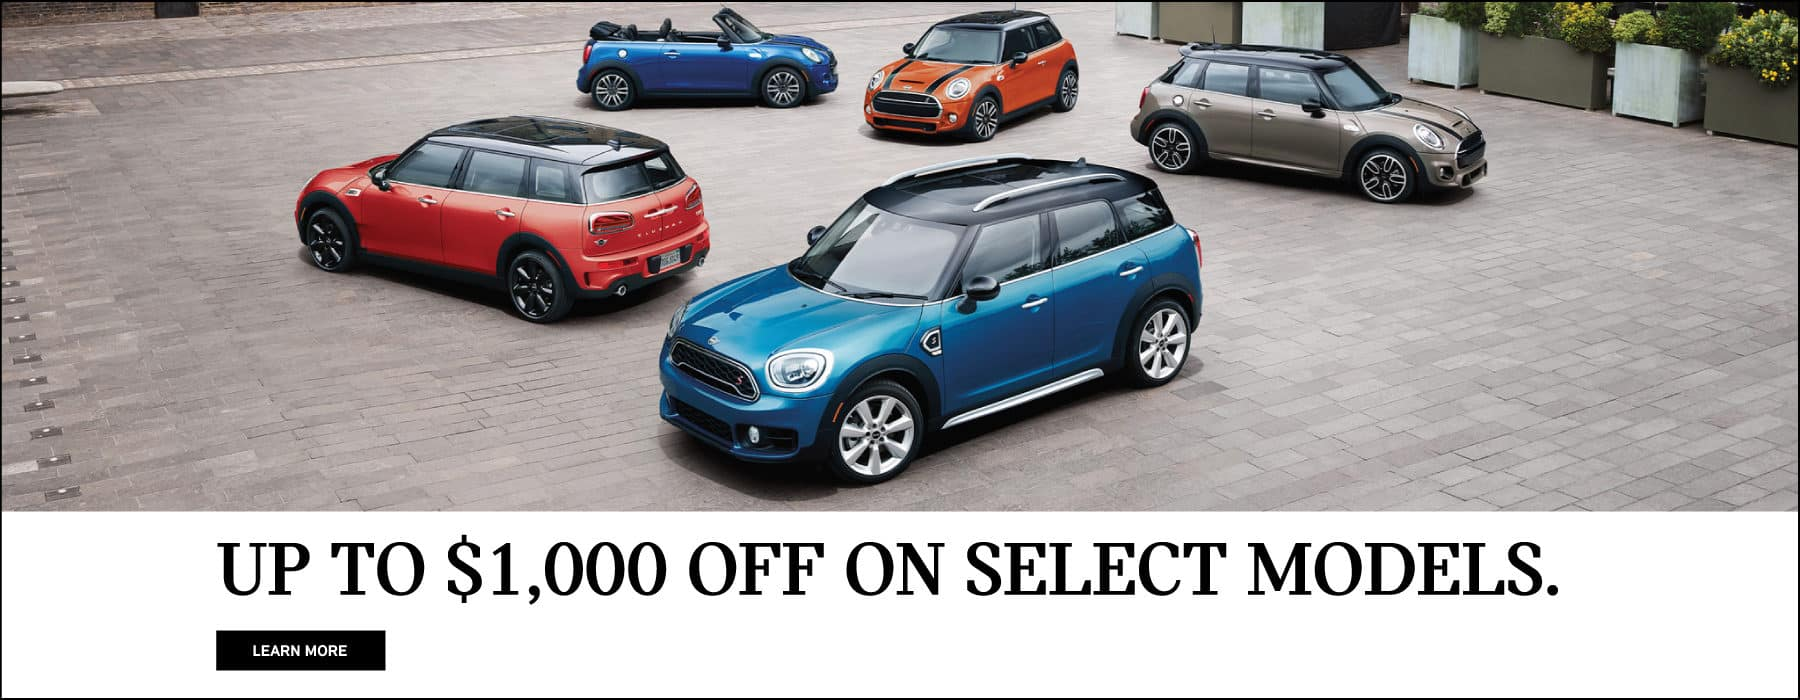 up to $1,000 off select mini models.